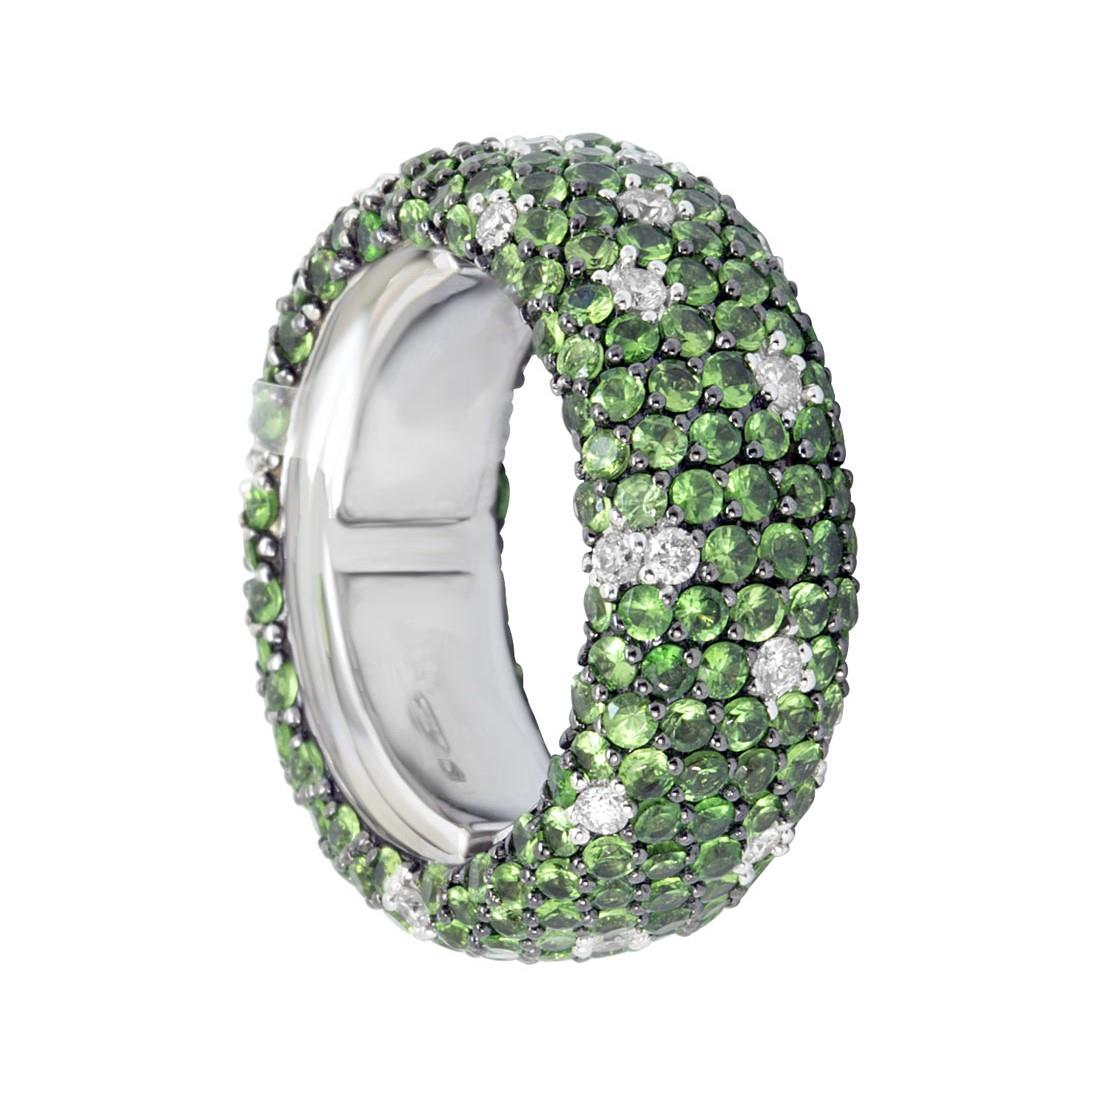 Anello eternity in oro bianco con diamanti ct 0.45 e tsavorite ct 4.40 - ALFIERI ST JOHN